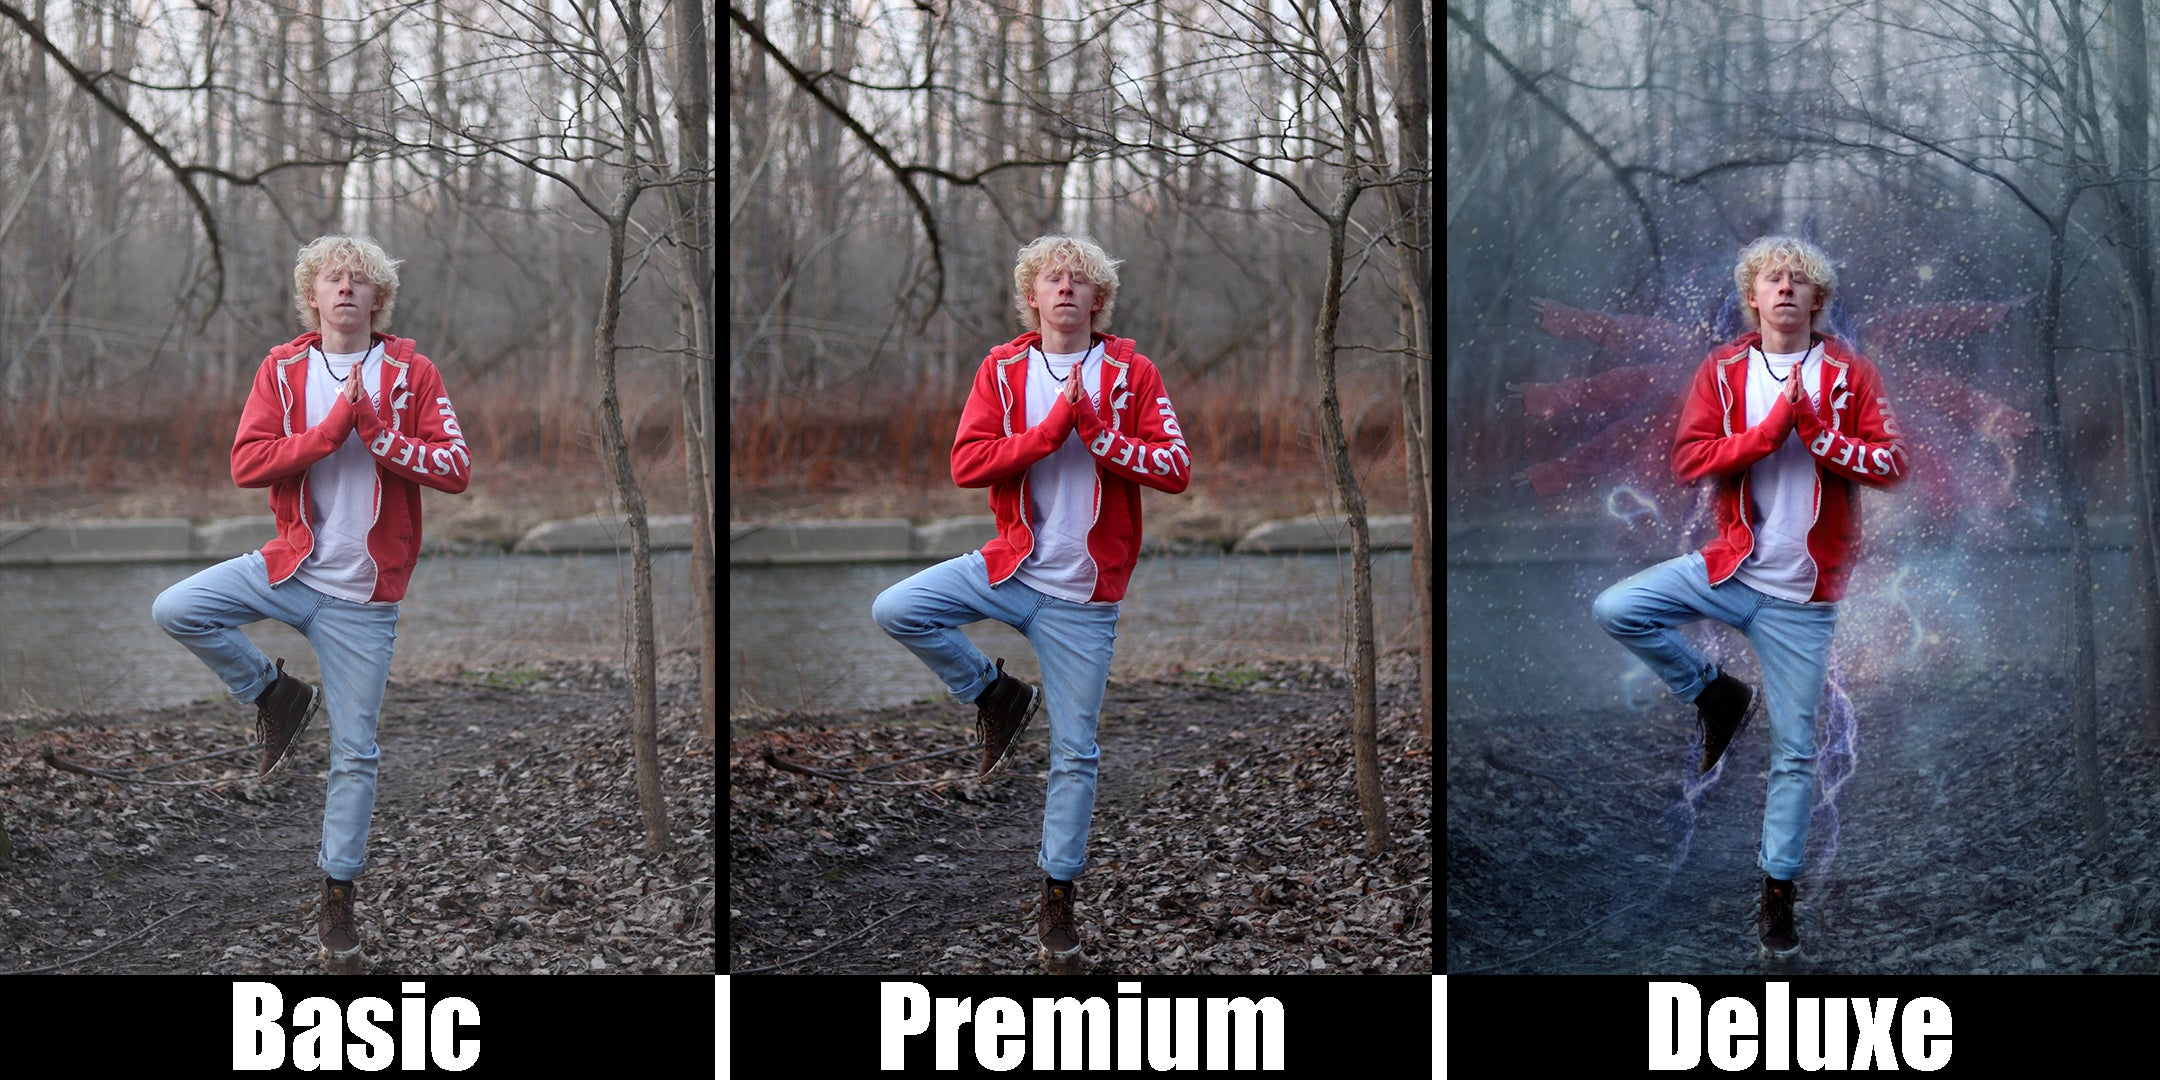 basic premium deluxe photoshop editing photography jay gemini James Gilsdorf photoshoot the twin studios production